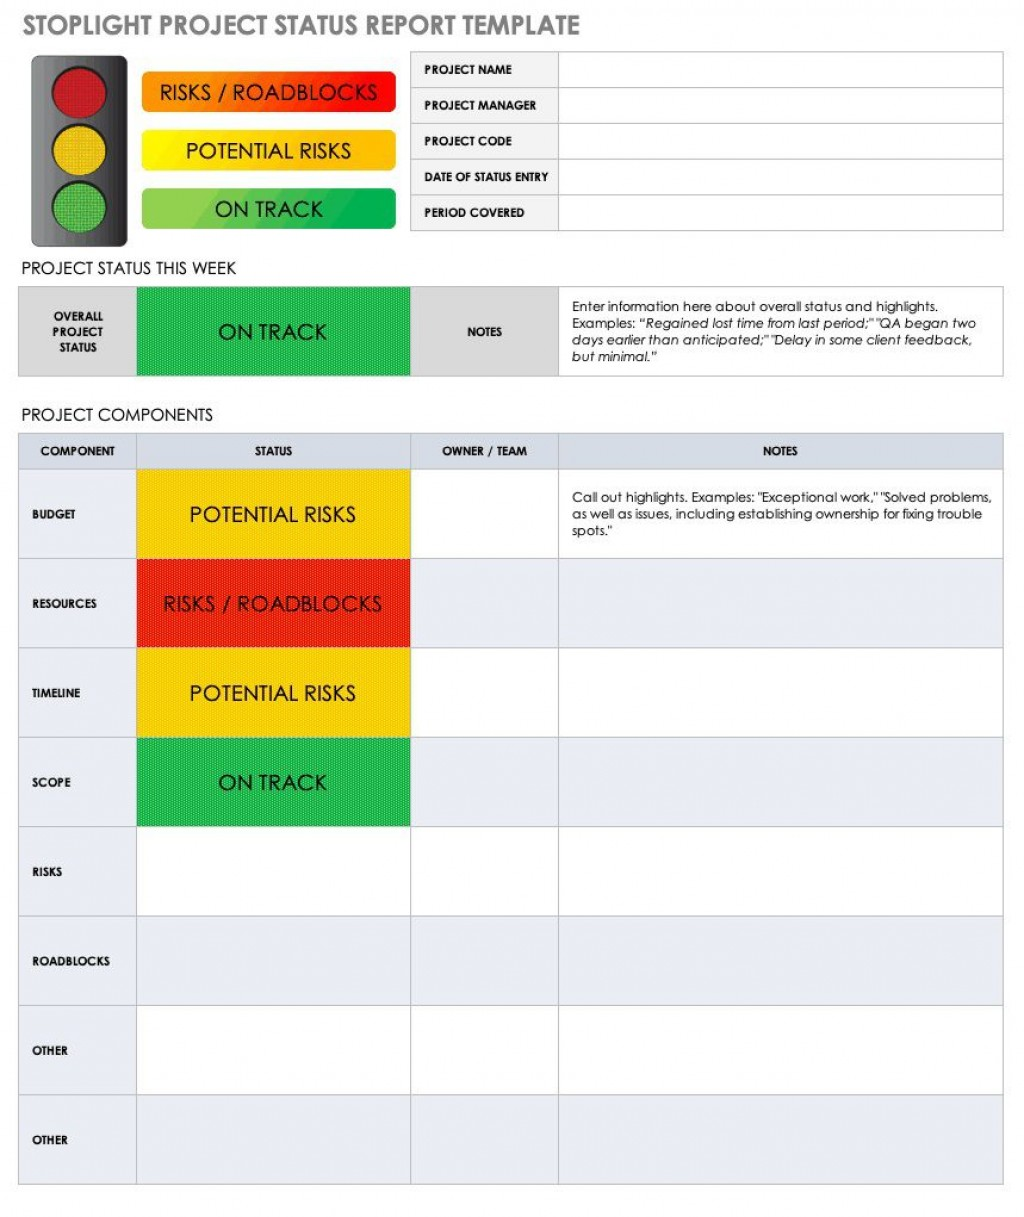 005 Stirring Project Statu Report Template Excel Photo  Free Progres Format XlLarge